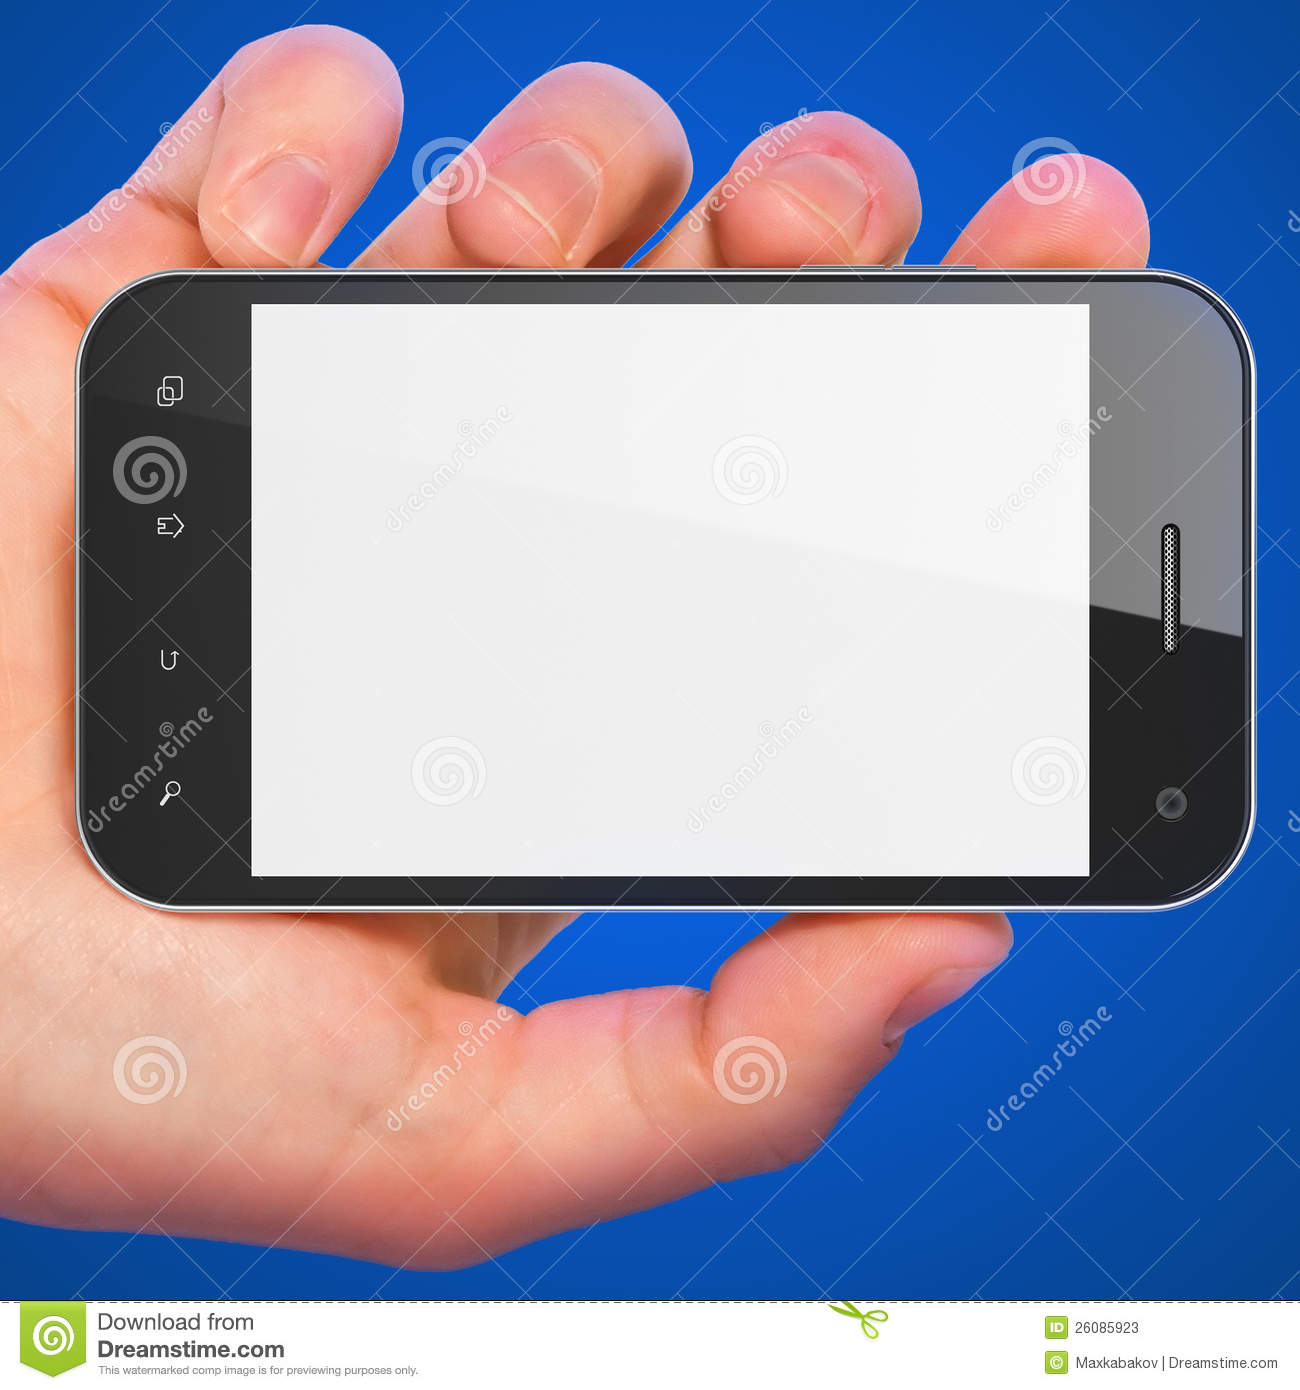 Hand Holding Smartphone On Blue Background. Stock ...